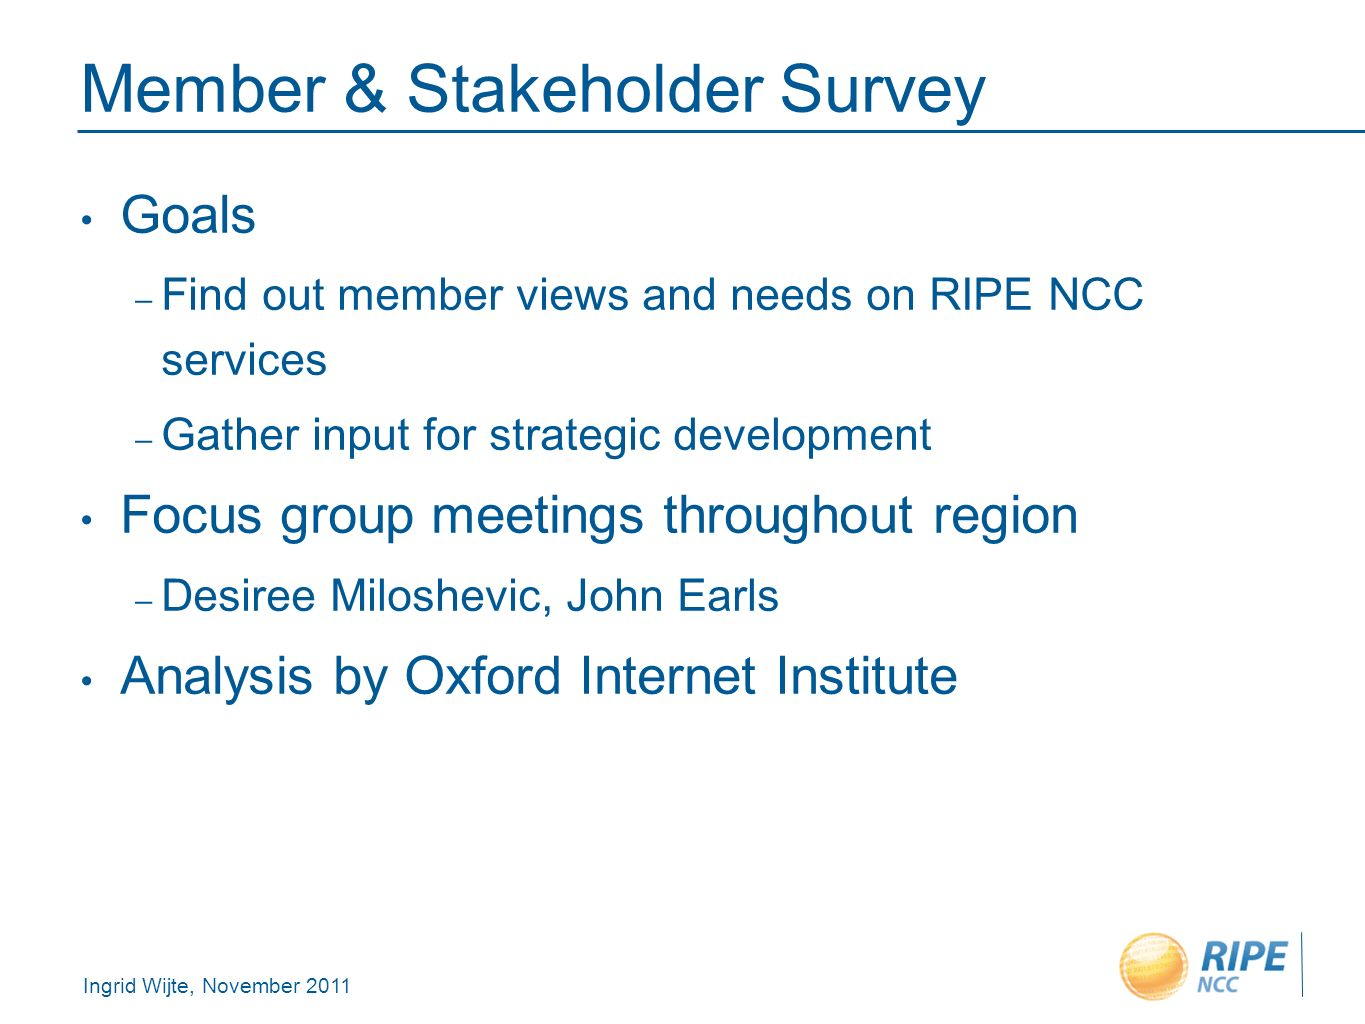 Ingrid Wijte, November 2011 Member & Stakeholder Survey Goals – Find out member views and needs on RIPE NCC services – Gather input for strategic development Focus group meetings throughout region – Desiree Miloshevic, John Earls Analysis by Oxford Internet Institute